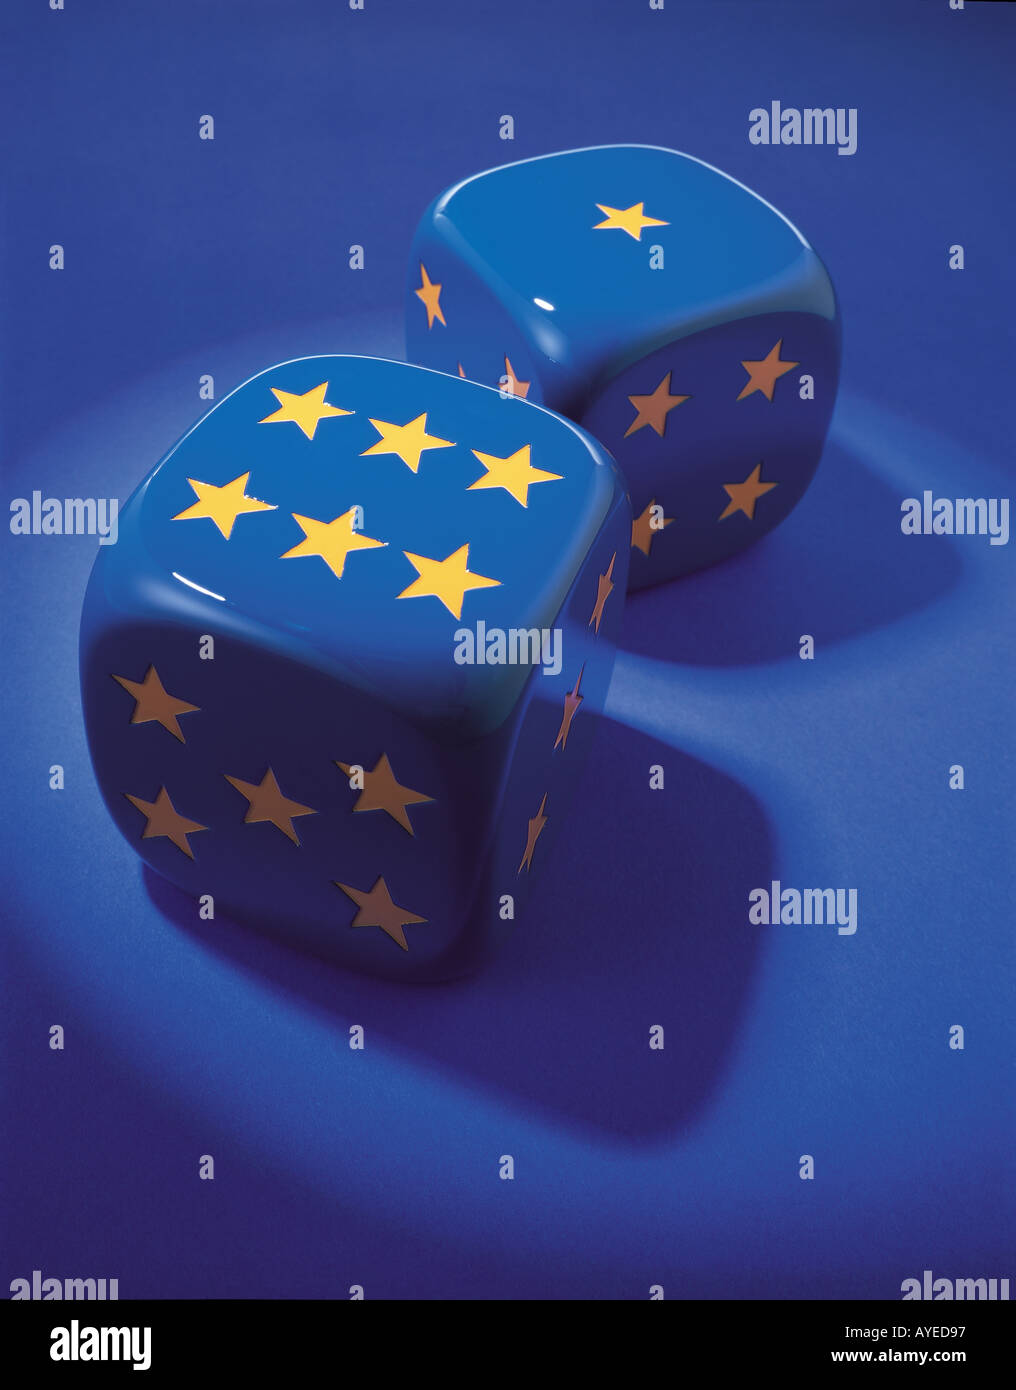 two blue dice with stars for numbers in gold colour like the European Union flag - Stock Image